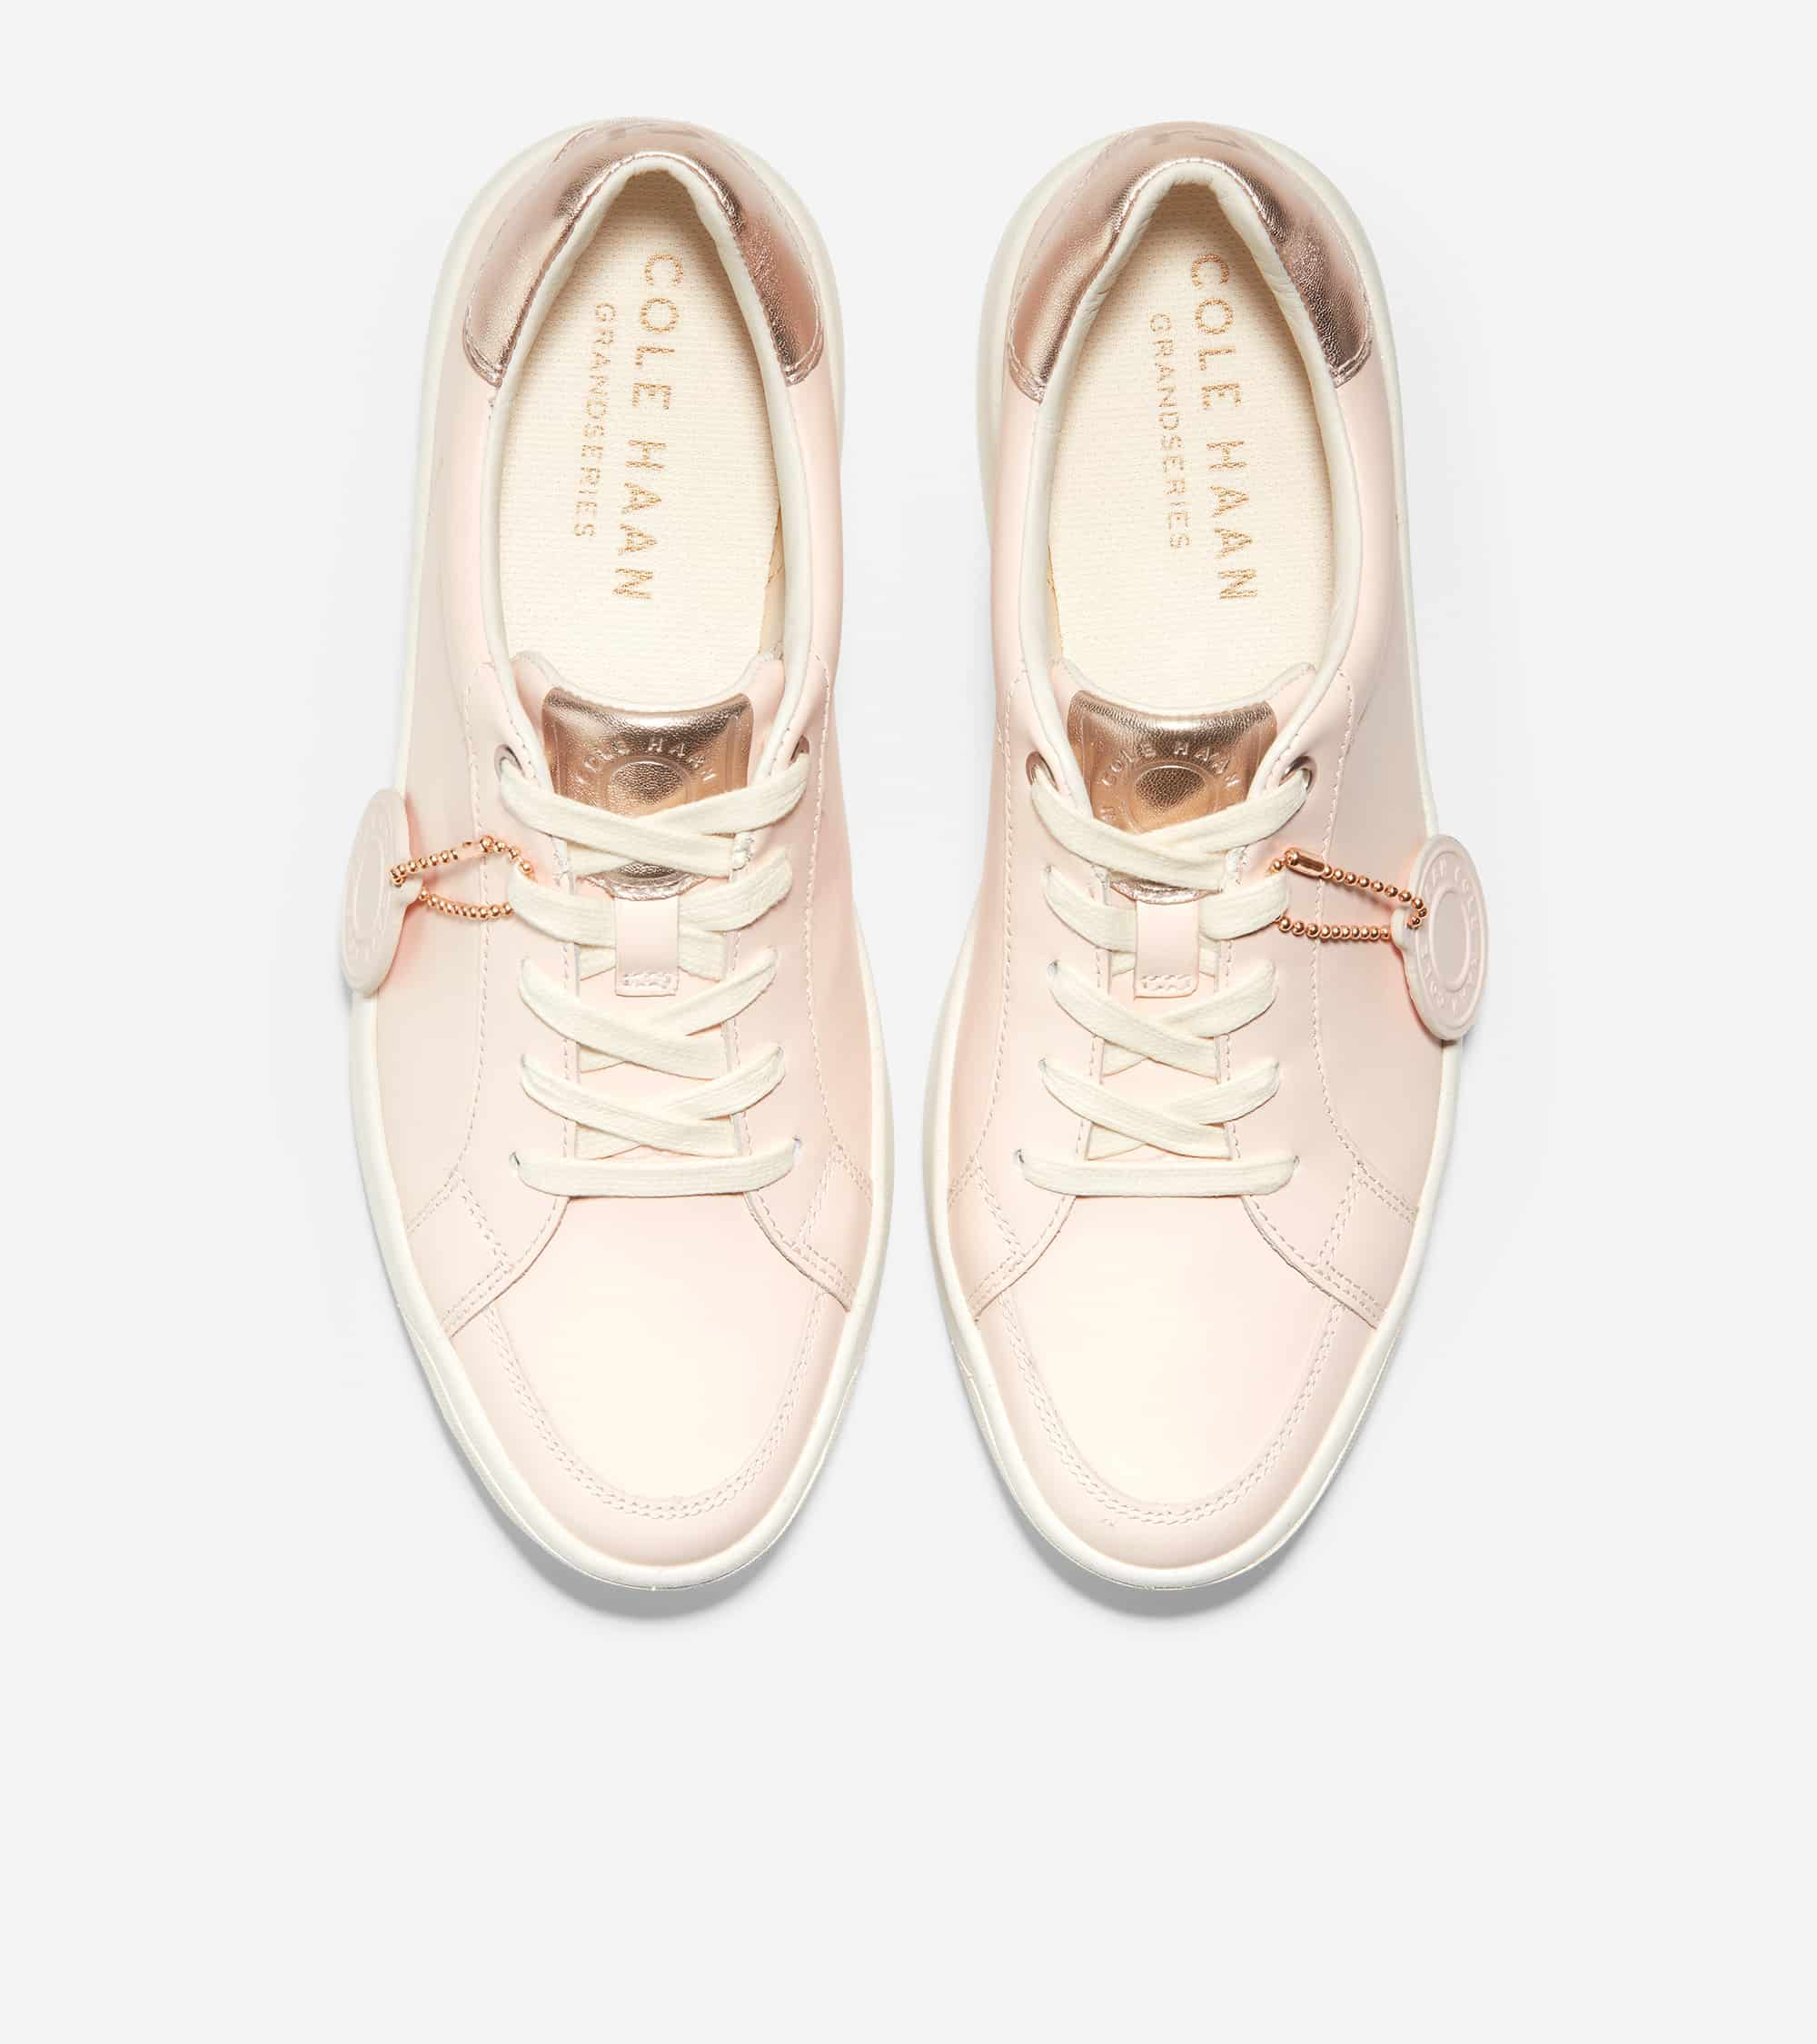 Cole Haan Grandprø Finalist Sneaker Clay Pink Eco Rebound Leather/ Rosegold Soft Talca Leather/ White Cap Gray